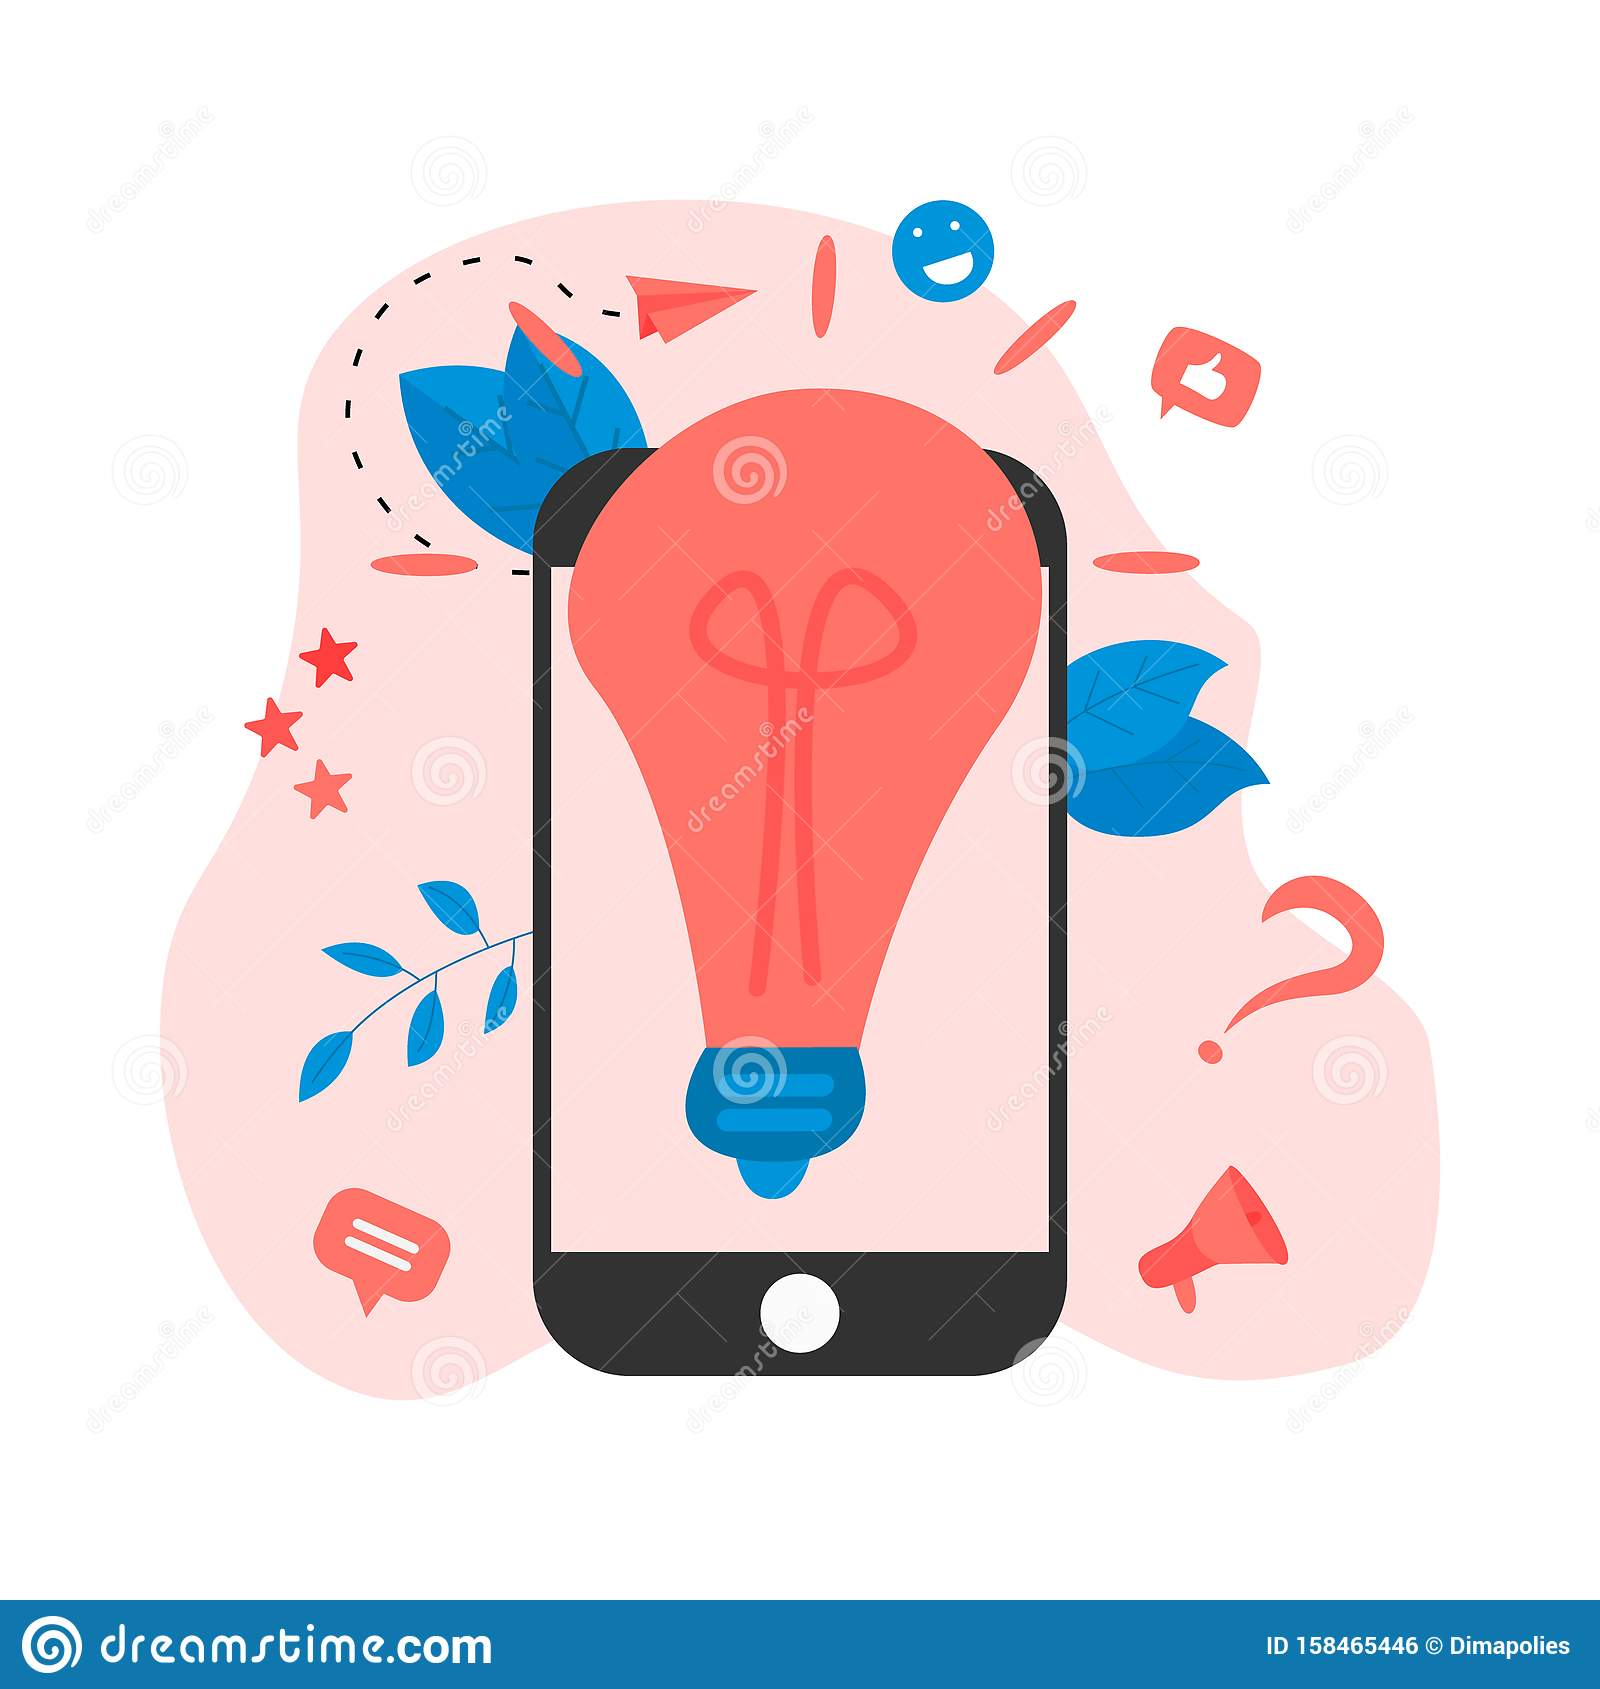 Creativity online business idea concepts with big bulb. Vector illustration